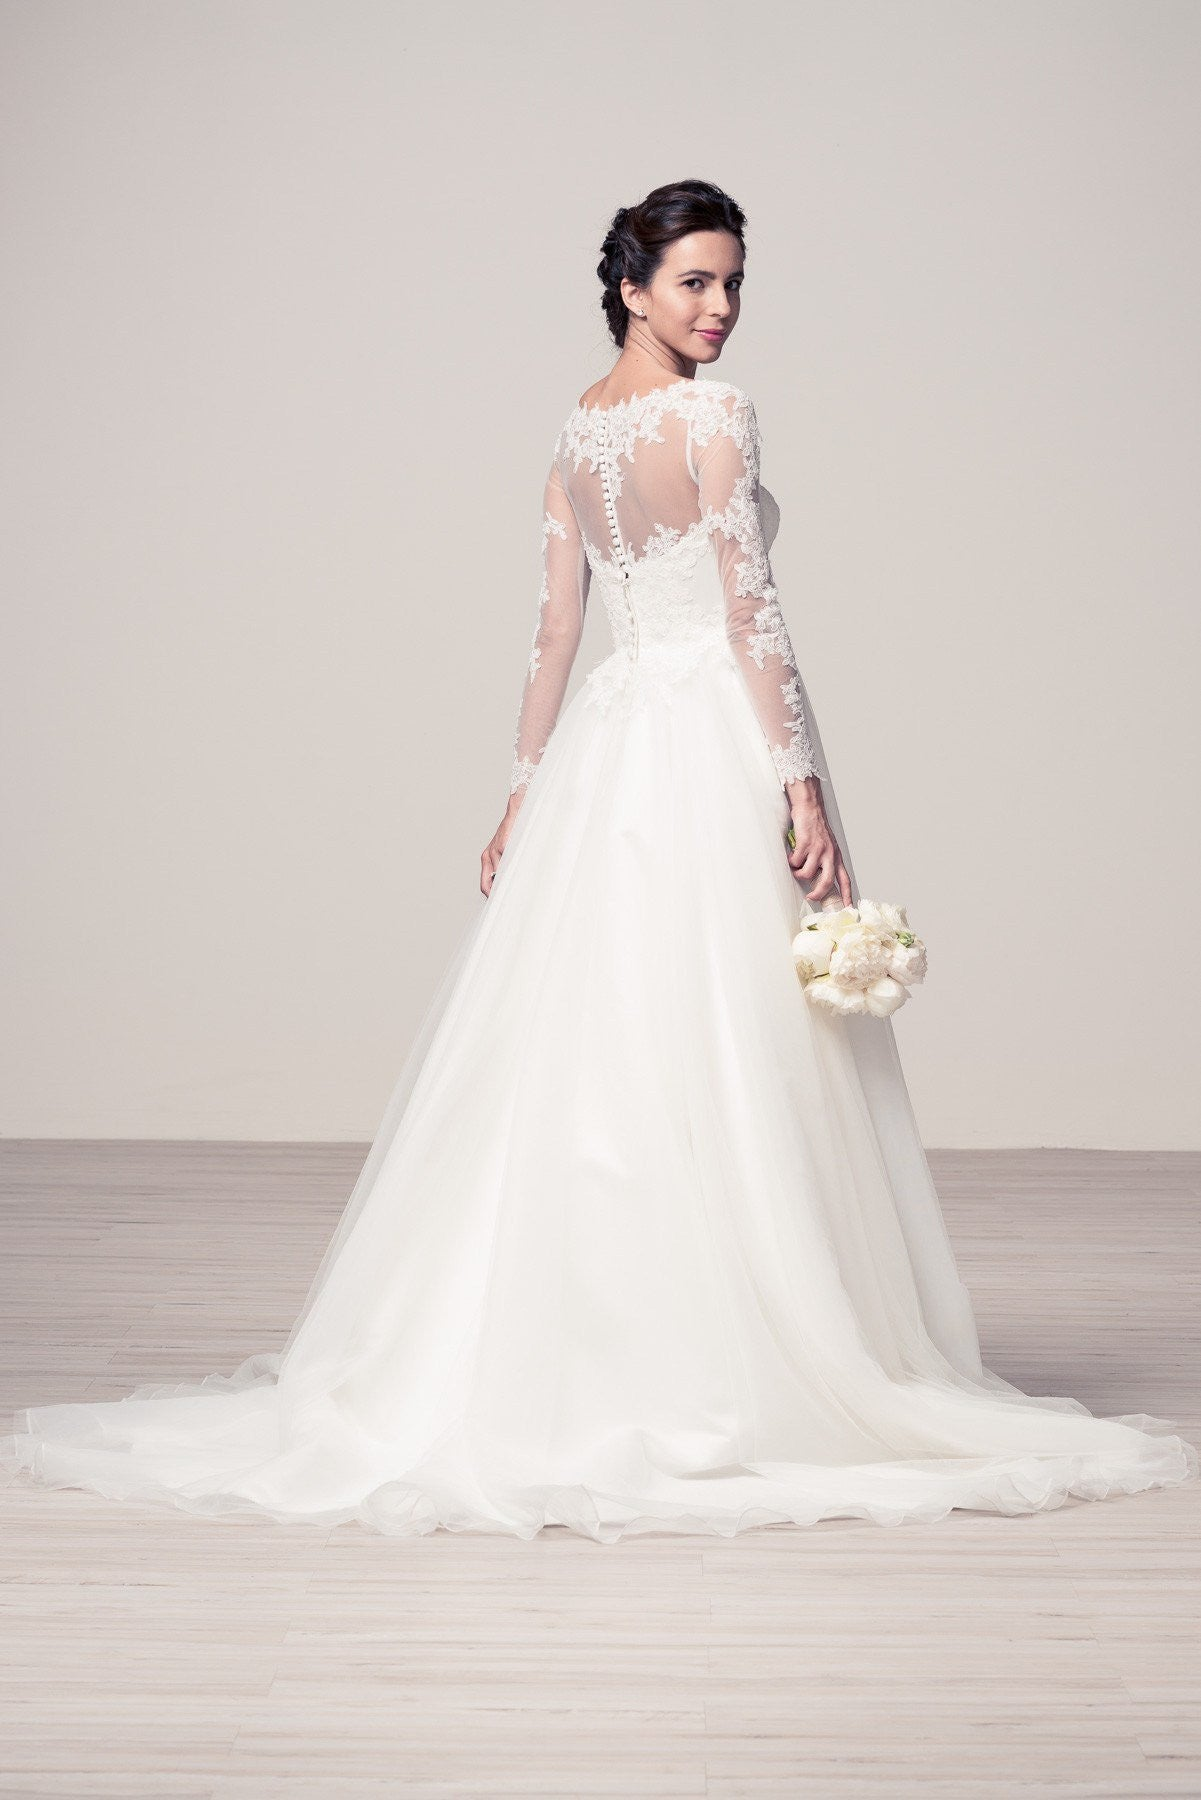 09be1e73ceef3 ... Romantic long sleeve lace wedding dress #wyw2183 Affordable - Simply  Fab Dress ...